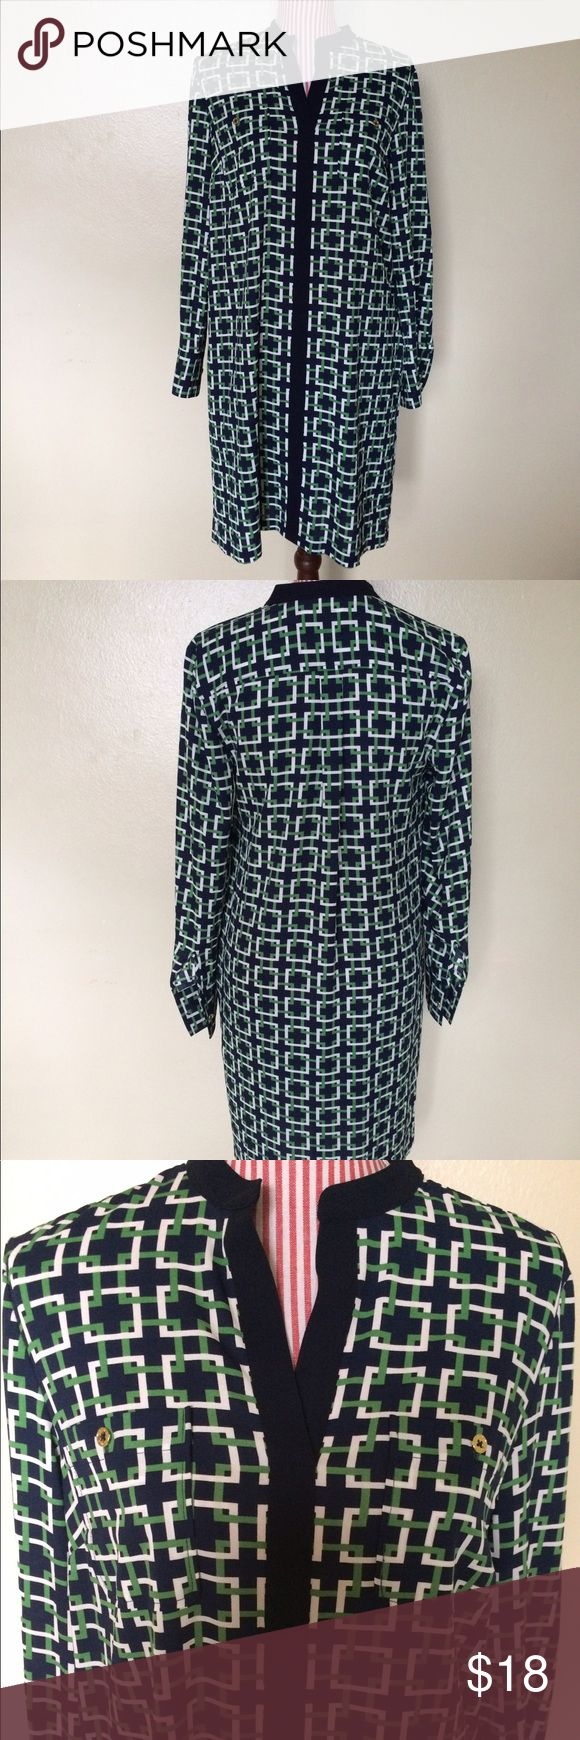 """Nautica Grn/Blue/White Pattern Dress S/M Nautica Green/Blue/White Patterned Dress, S/M. Size tag removed. Measures 38"""" underarm to underarm, 36"""" length and 24"""" at the sleeves. Nautica Dresses"""